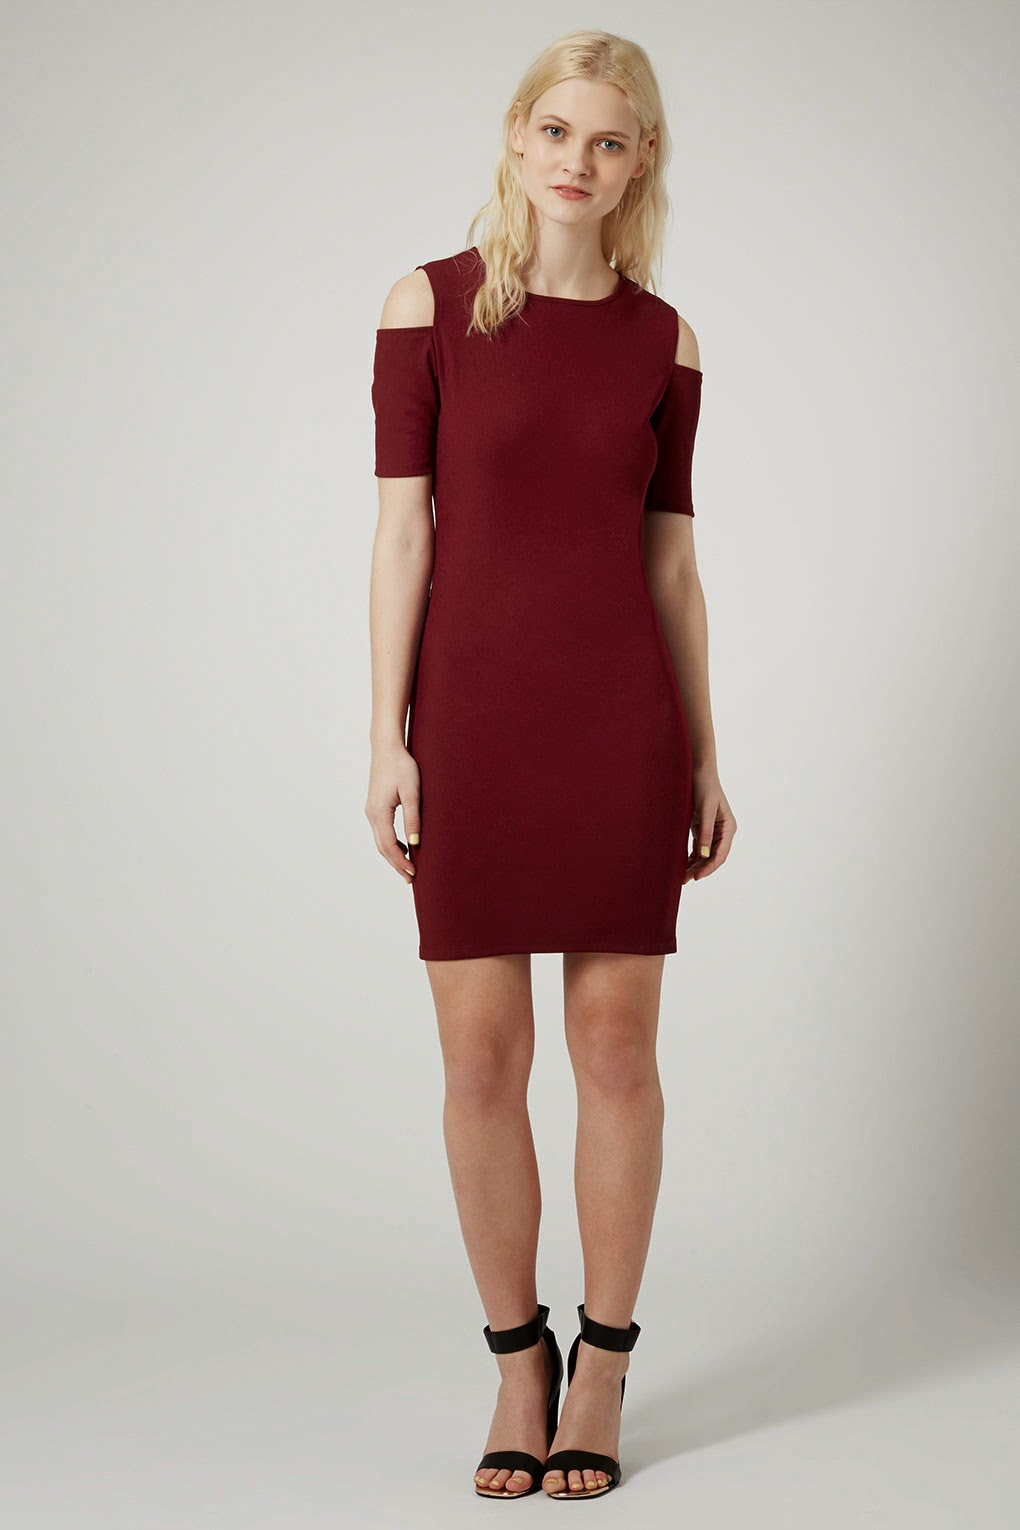 burgundy shoulder dress